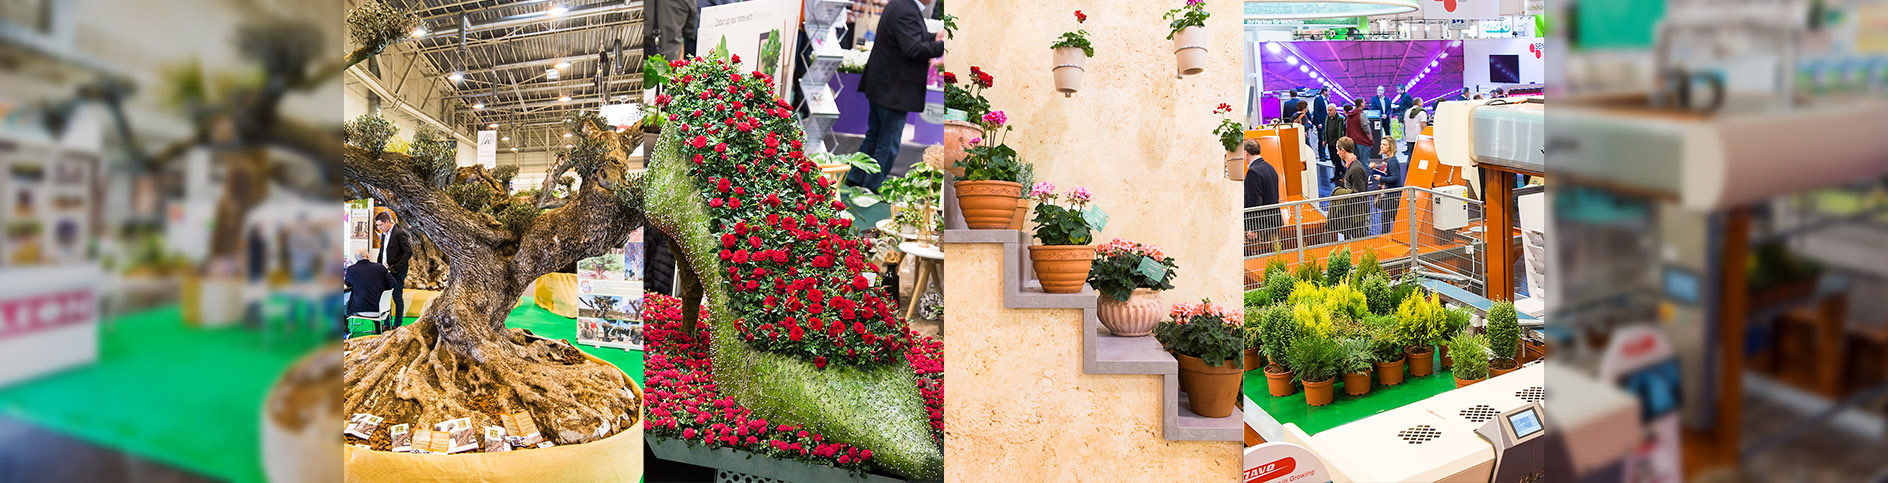 IPM ESSEN 2018: 36th World's Leading Fair for Horticulture with New Site Situation